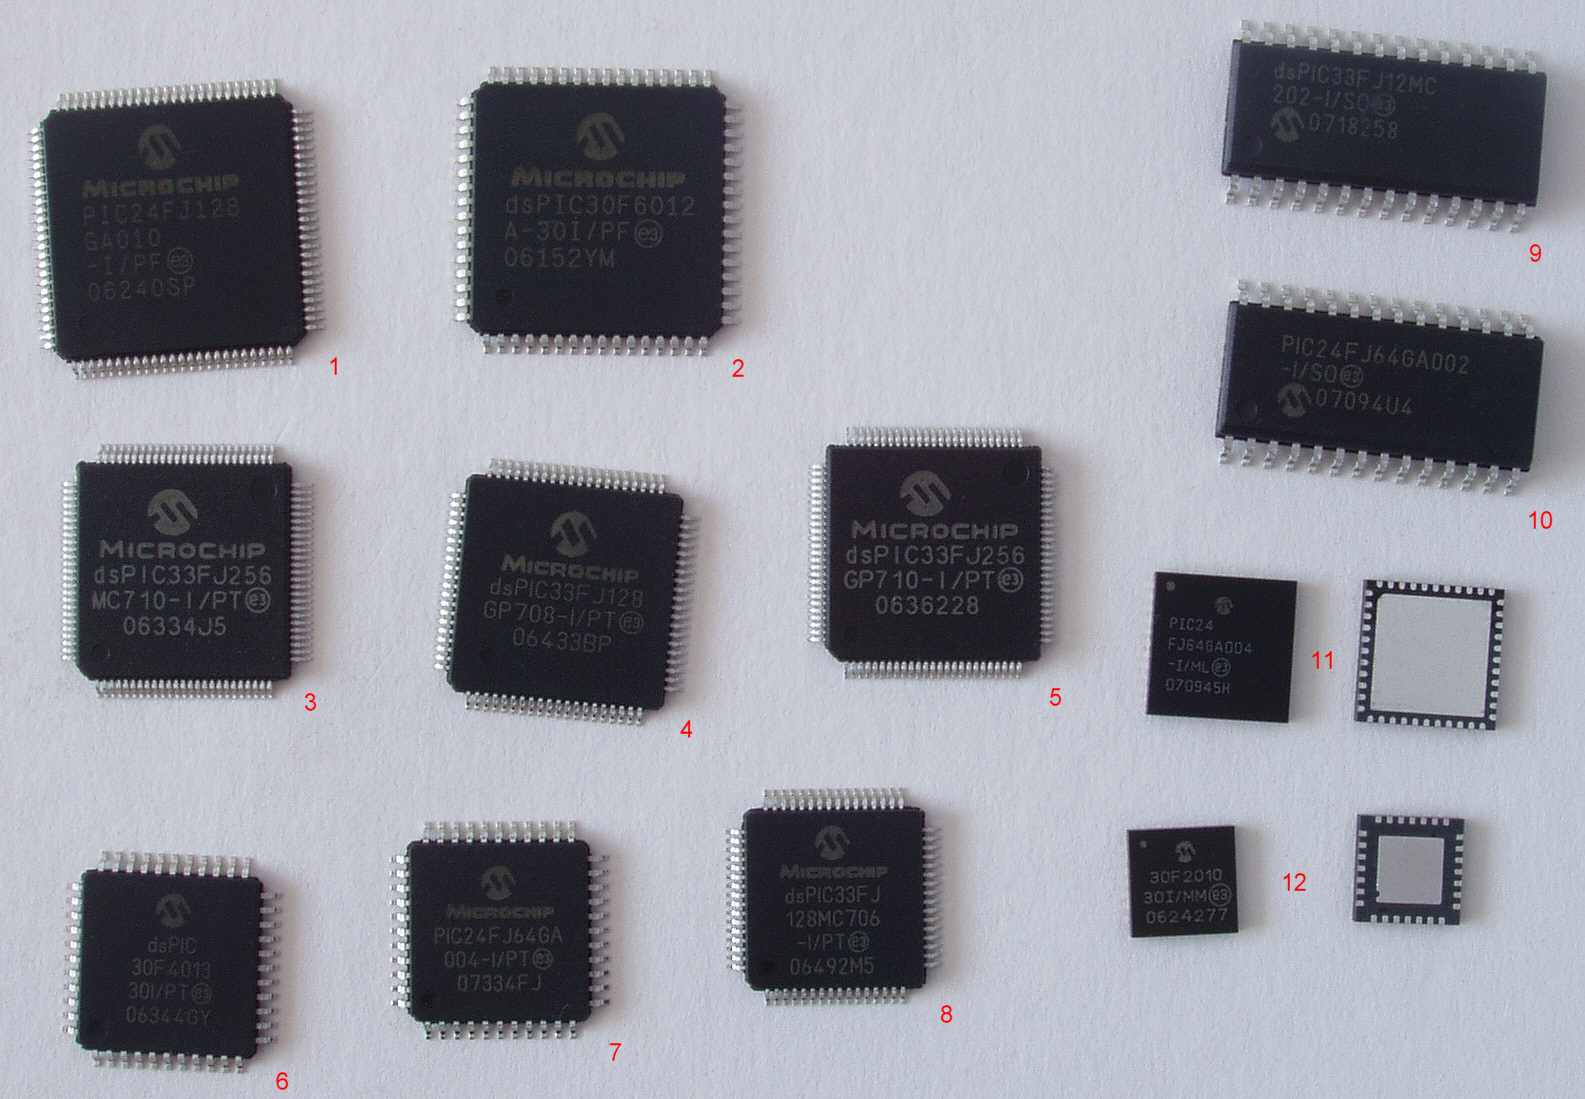 Difference Between Biochip and Microchip